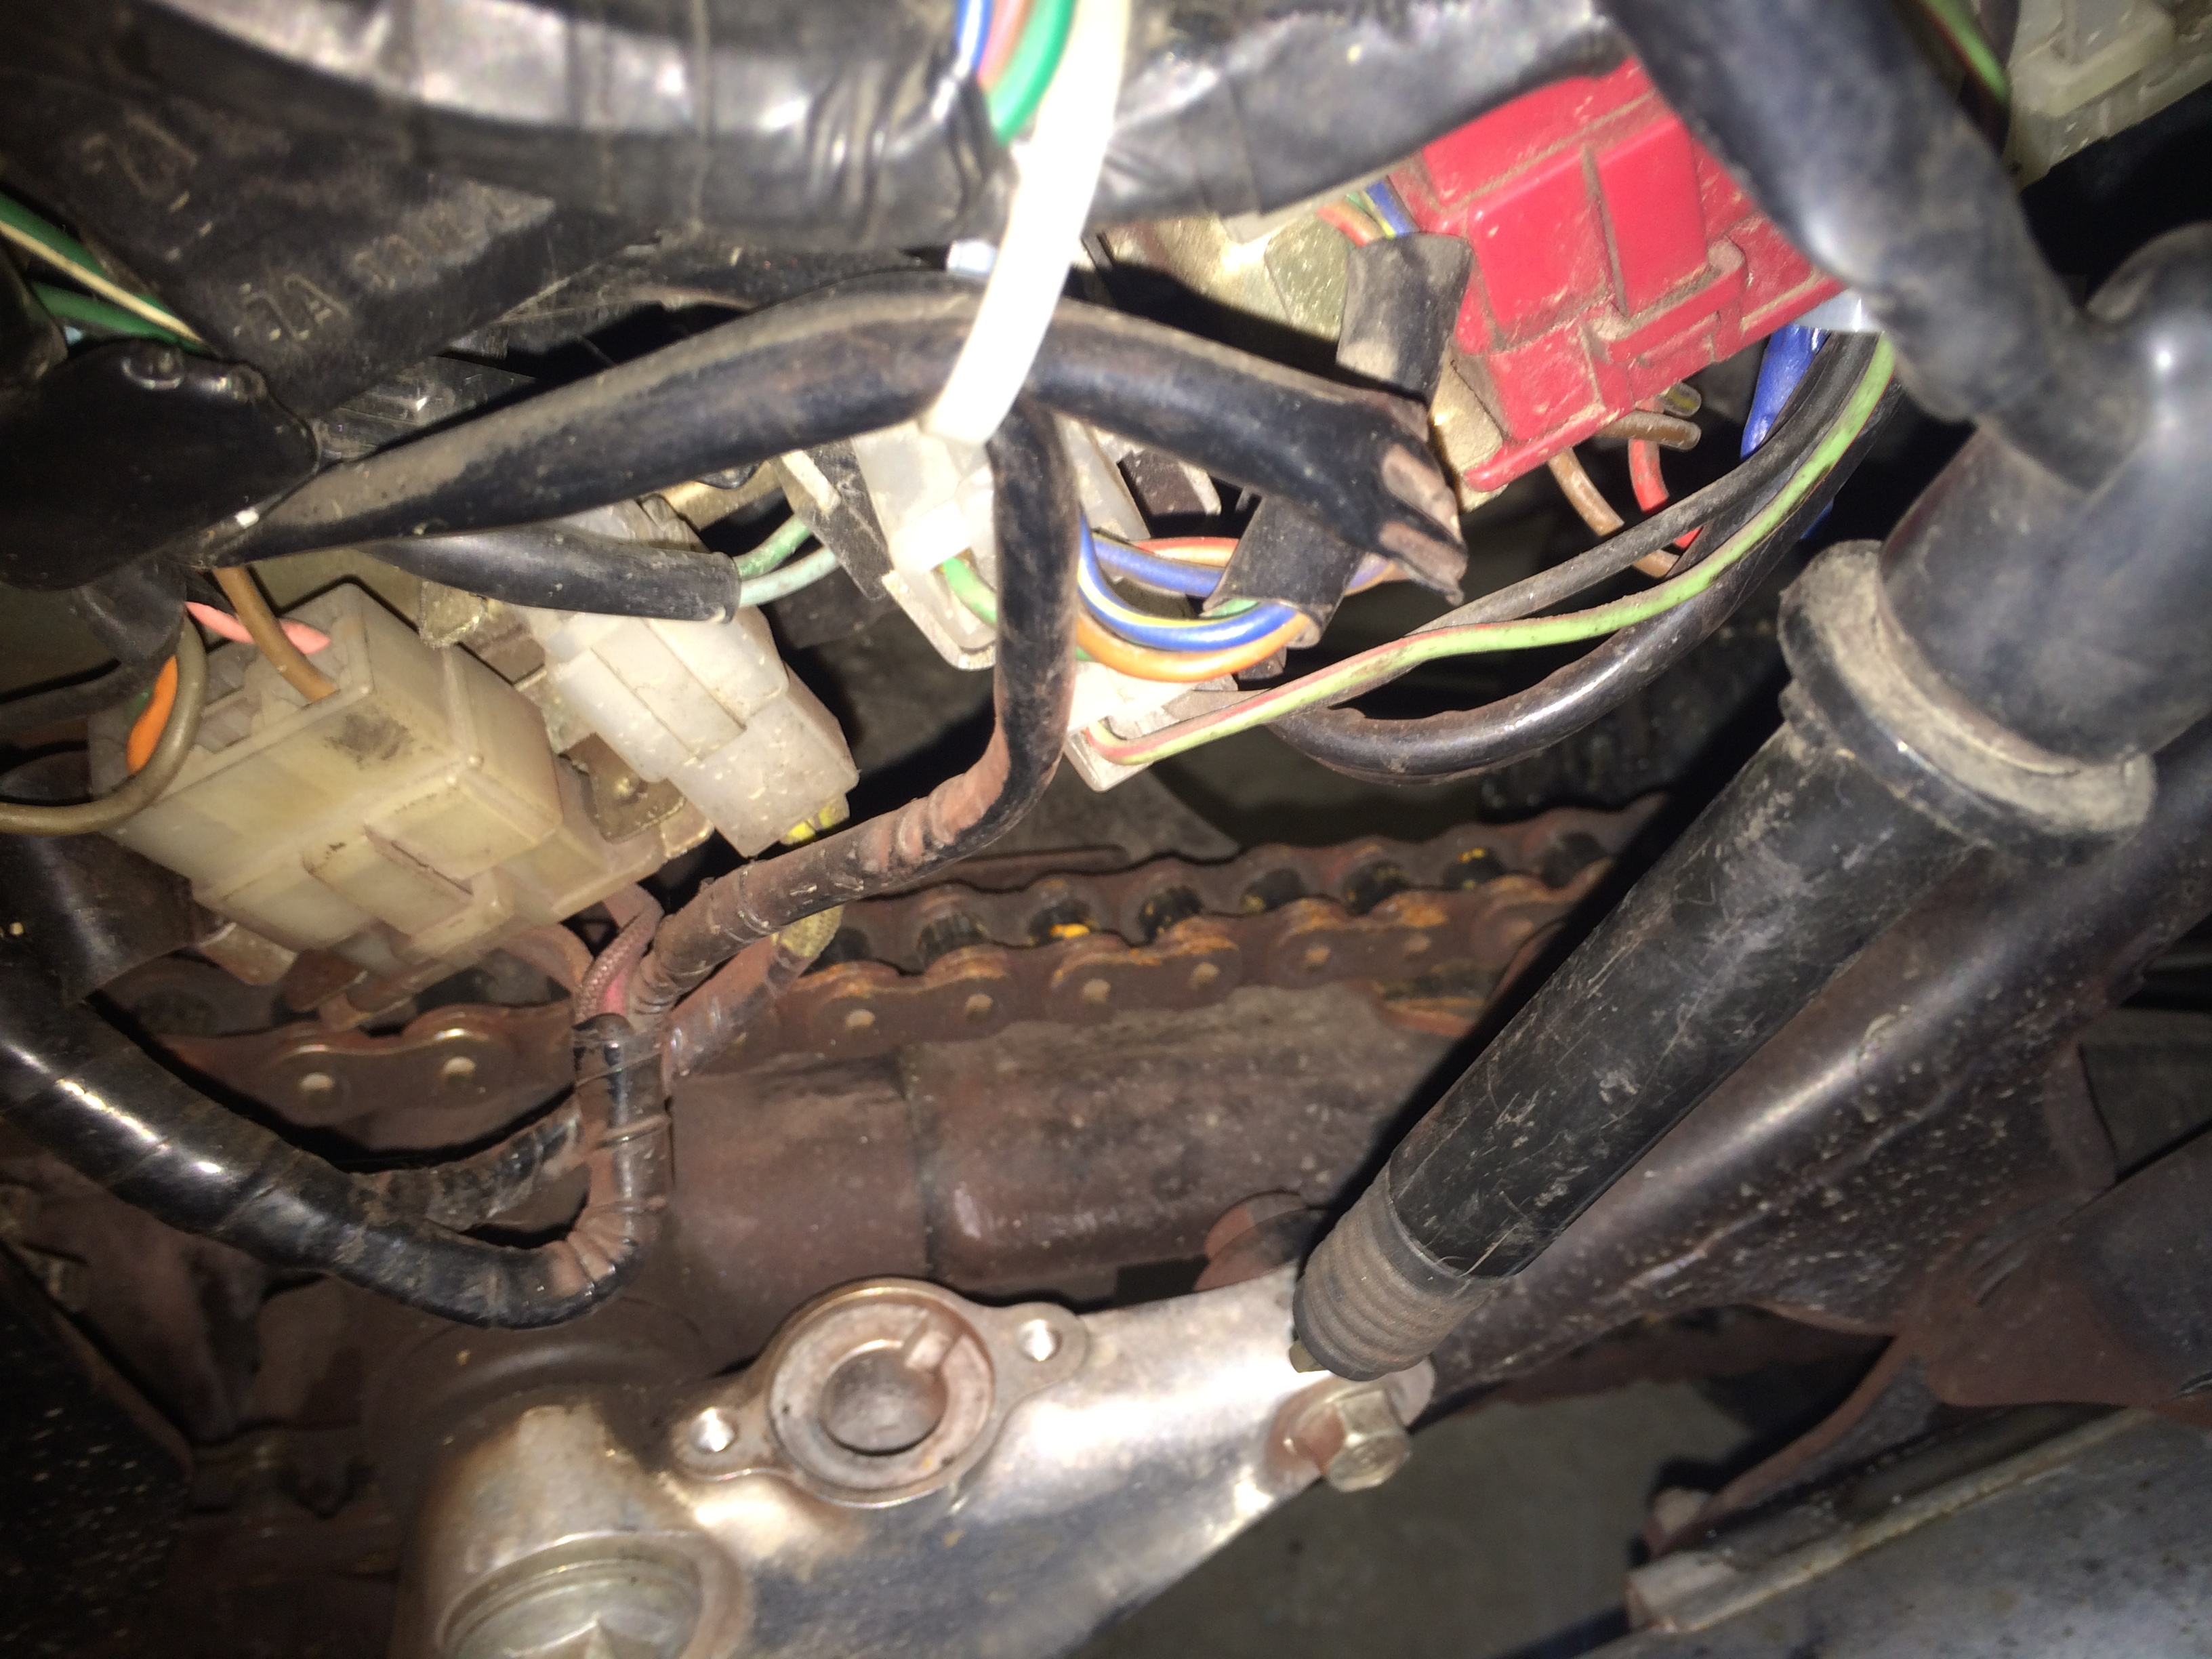 1982 Honda 450 Hondamatic Wiring Electrical Diagram House Cx500 Cm450a Mystery Cable Buried Behind Rectifier Rh Hondatwins Net Cm Bobber 1978